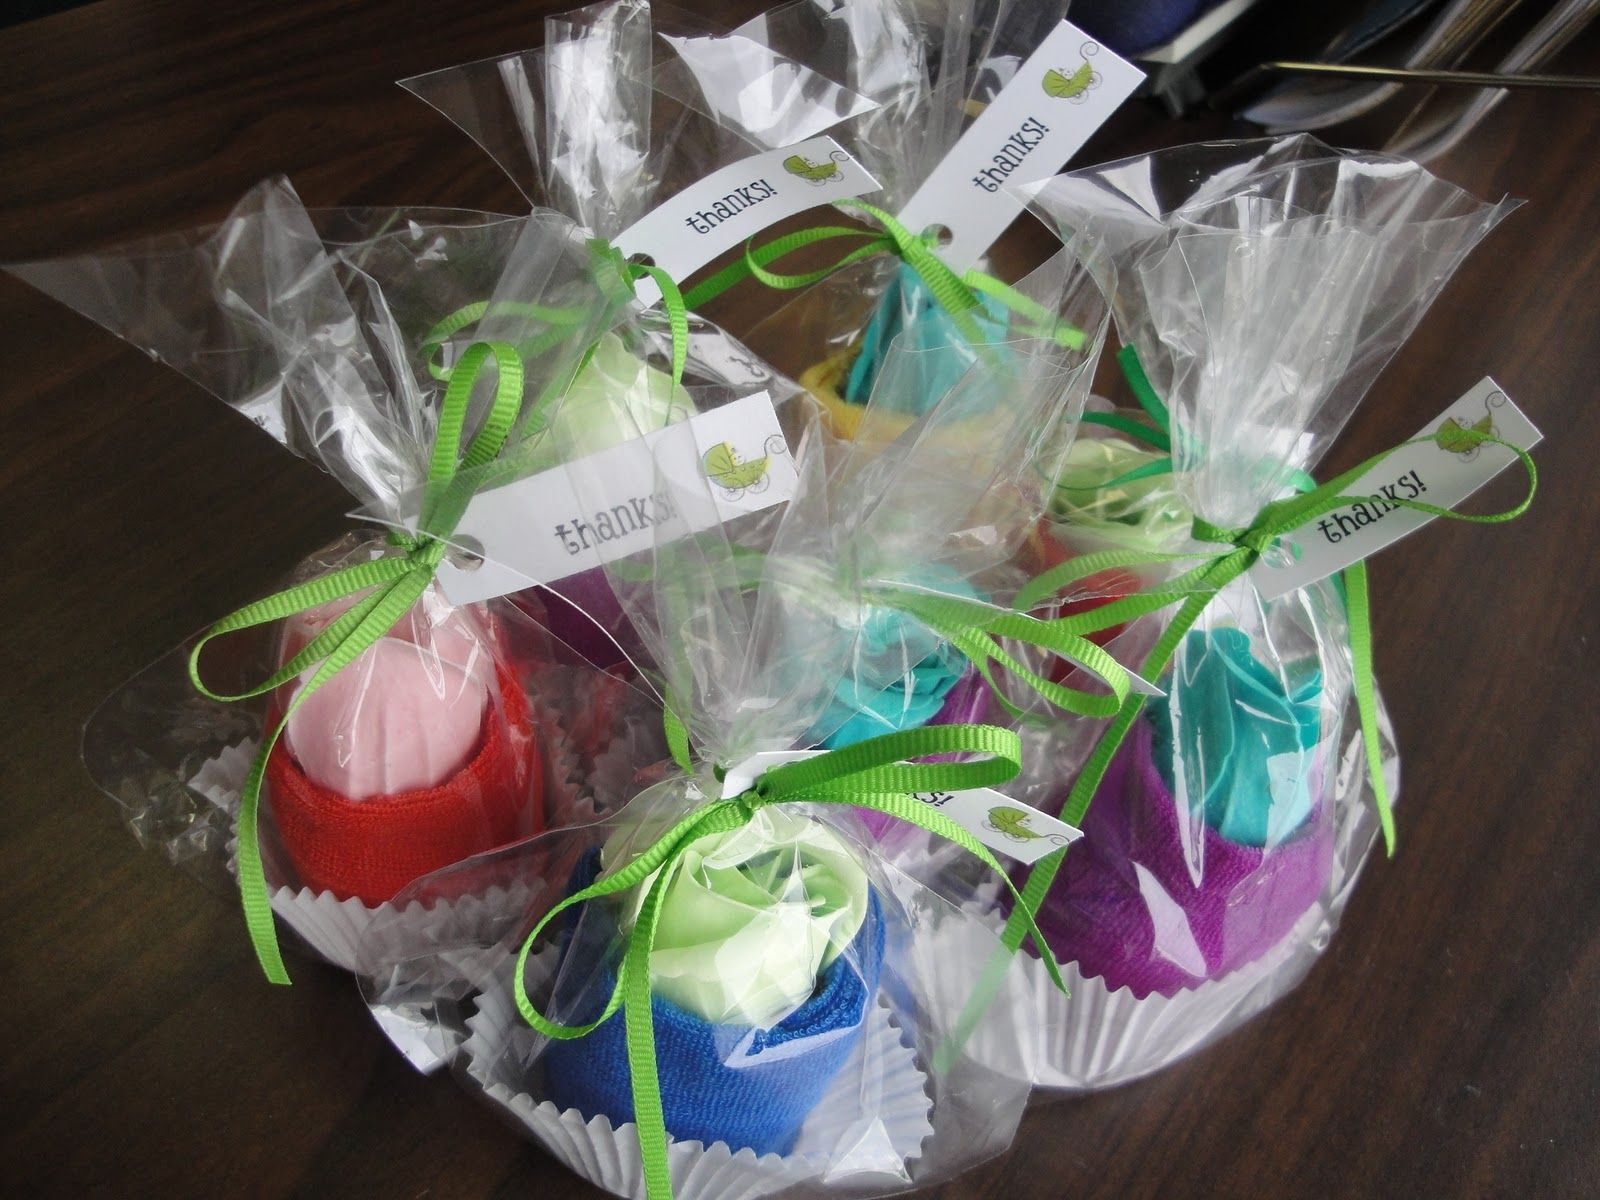 Baby Shower Favors For A Boy | Was Looking For Baby Shower Favor Ideas For  My